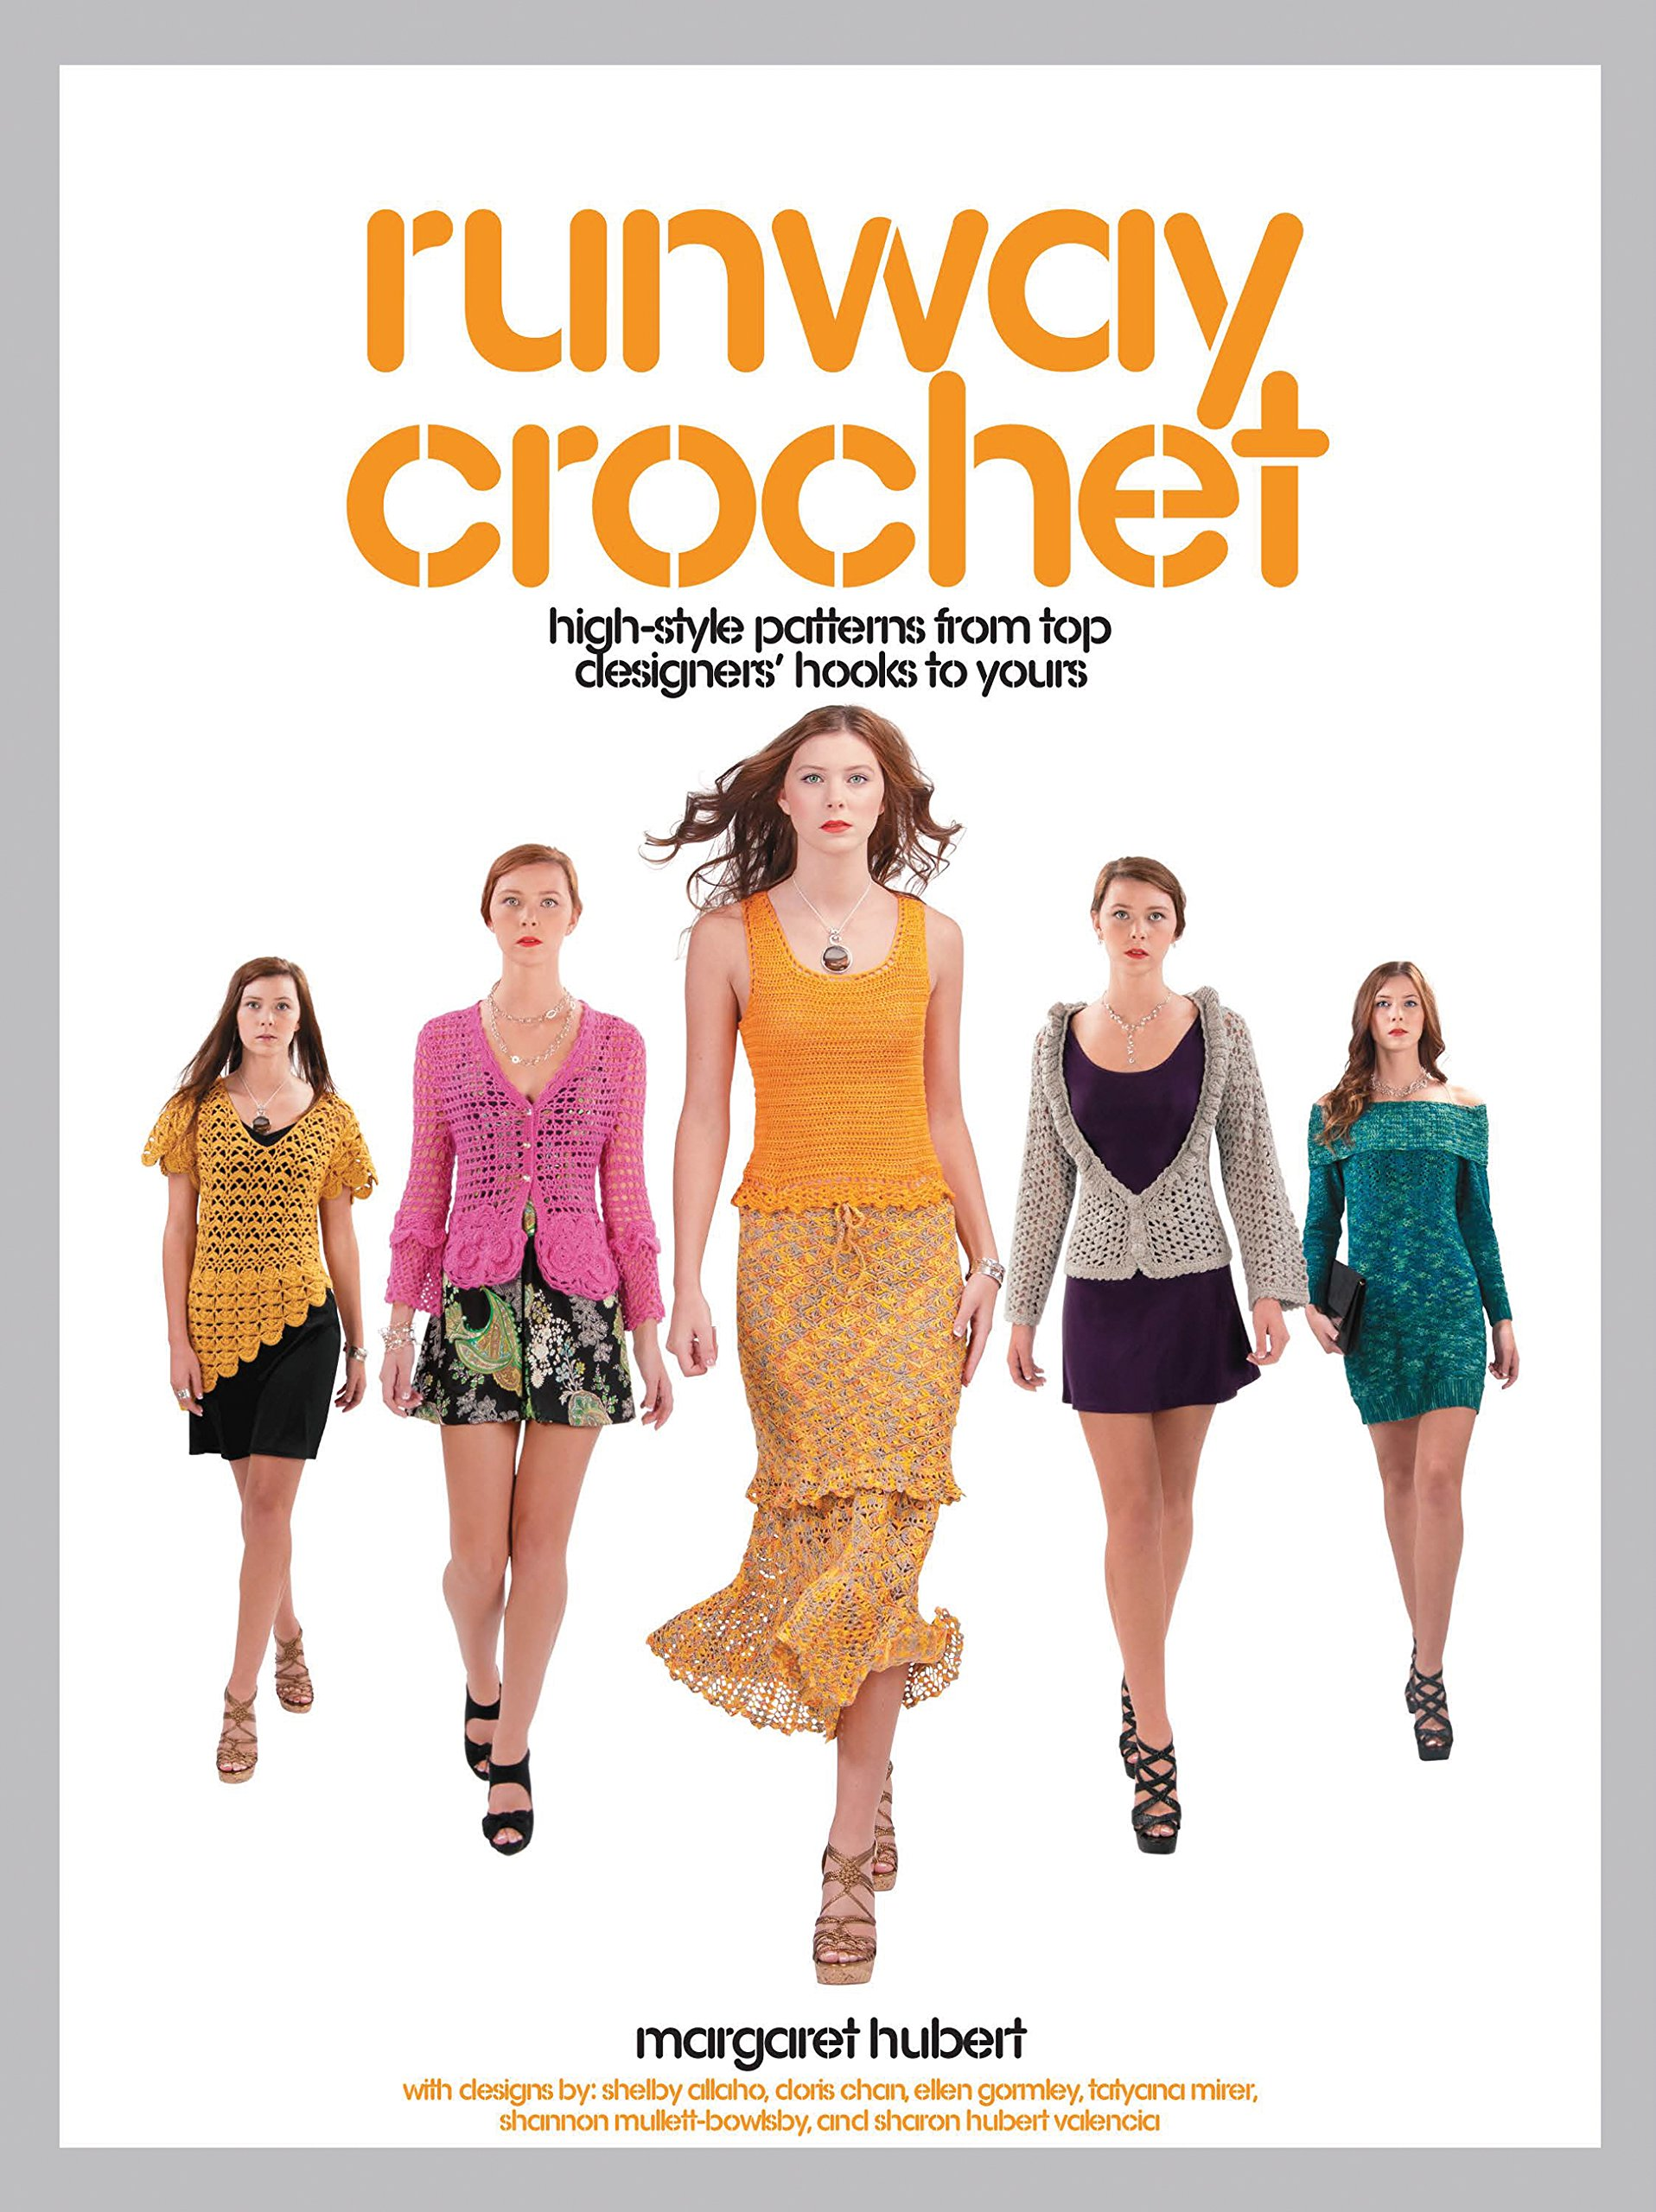 Runway Crochet: High-style Patterns from Top Designers' Hooks to Yours:  Margaret Hubert: 0499991621149: Amazon.com: Books